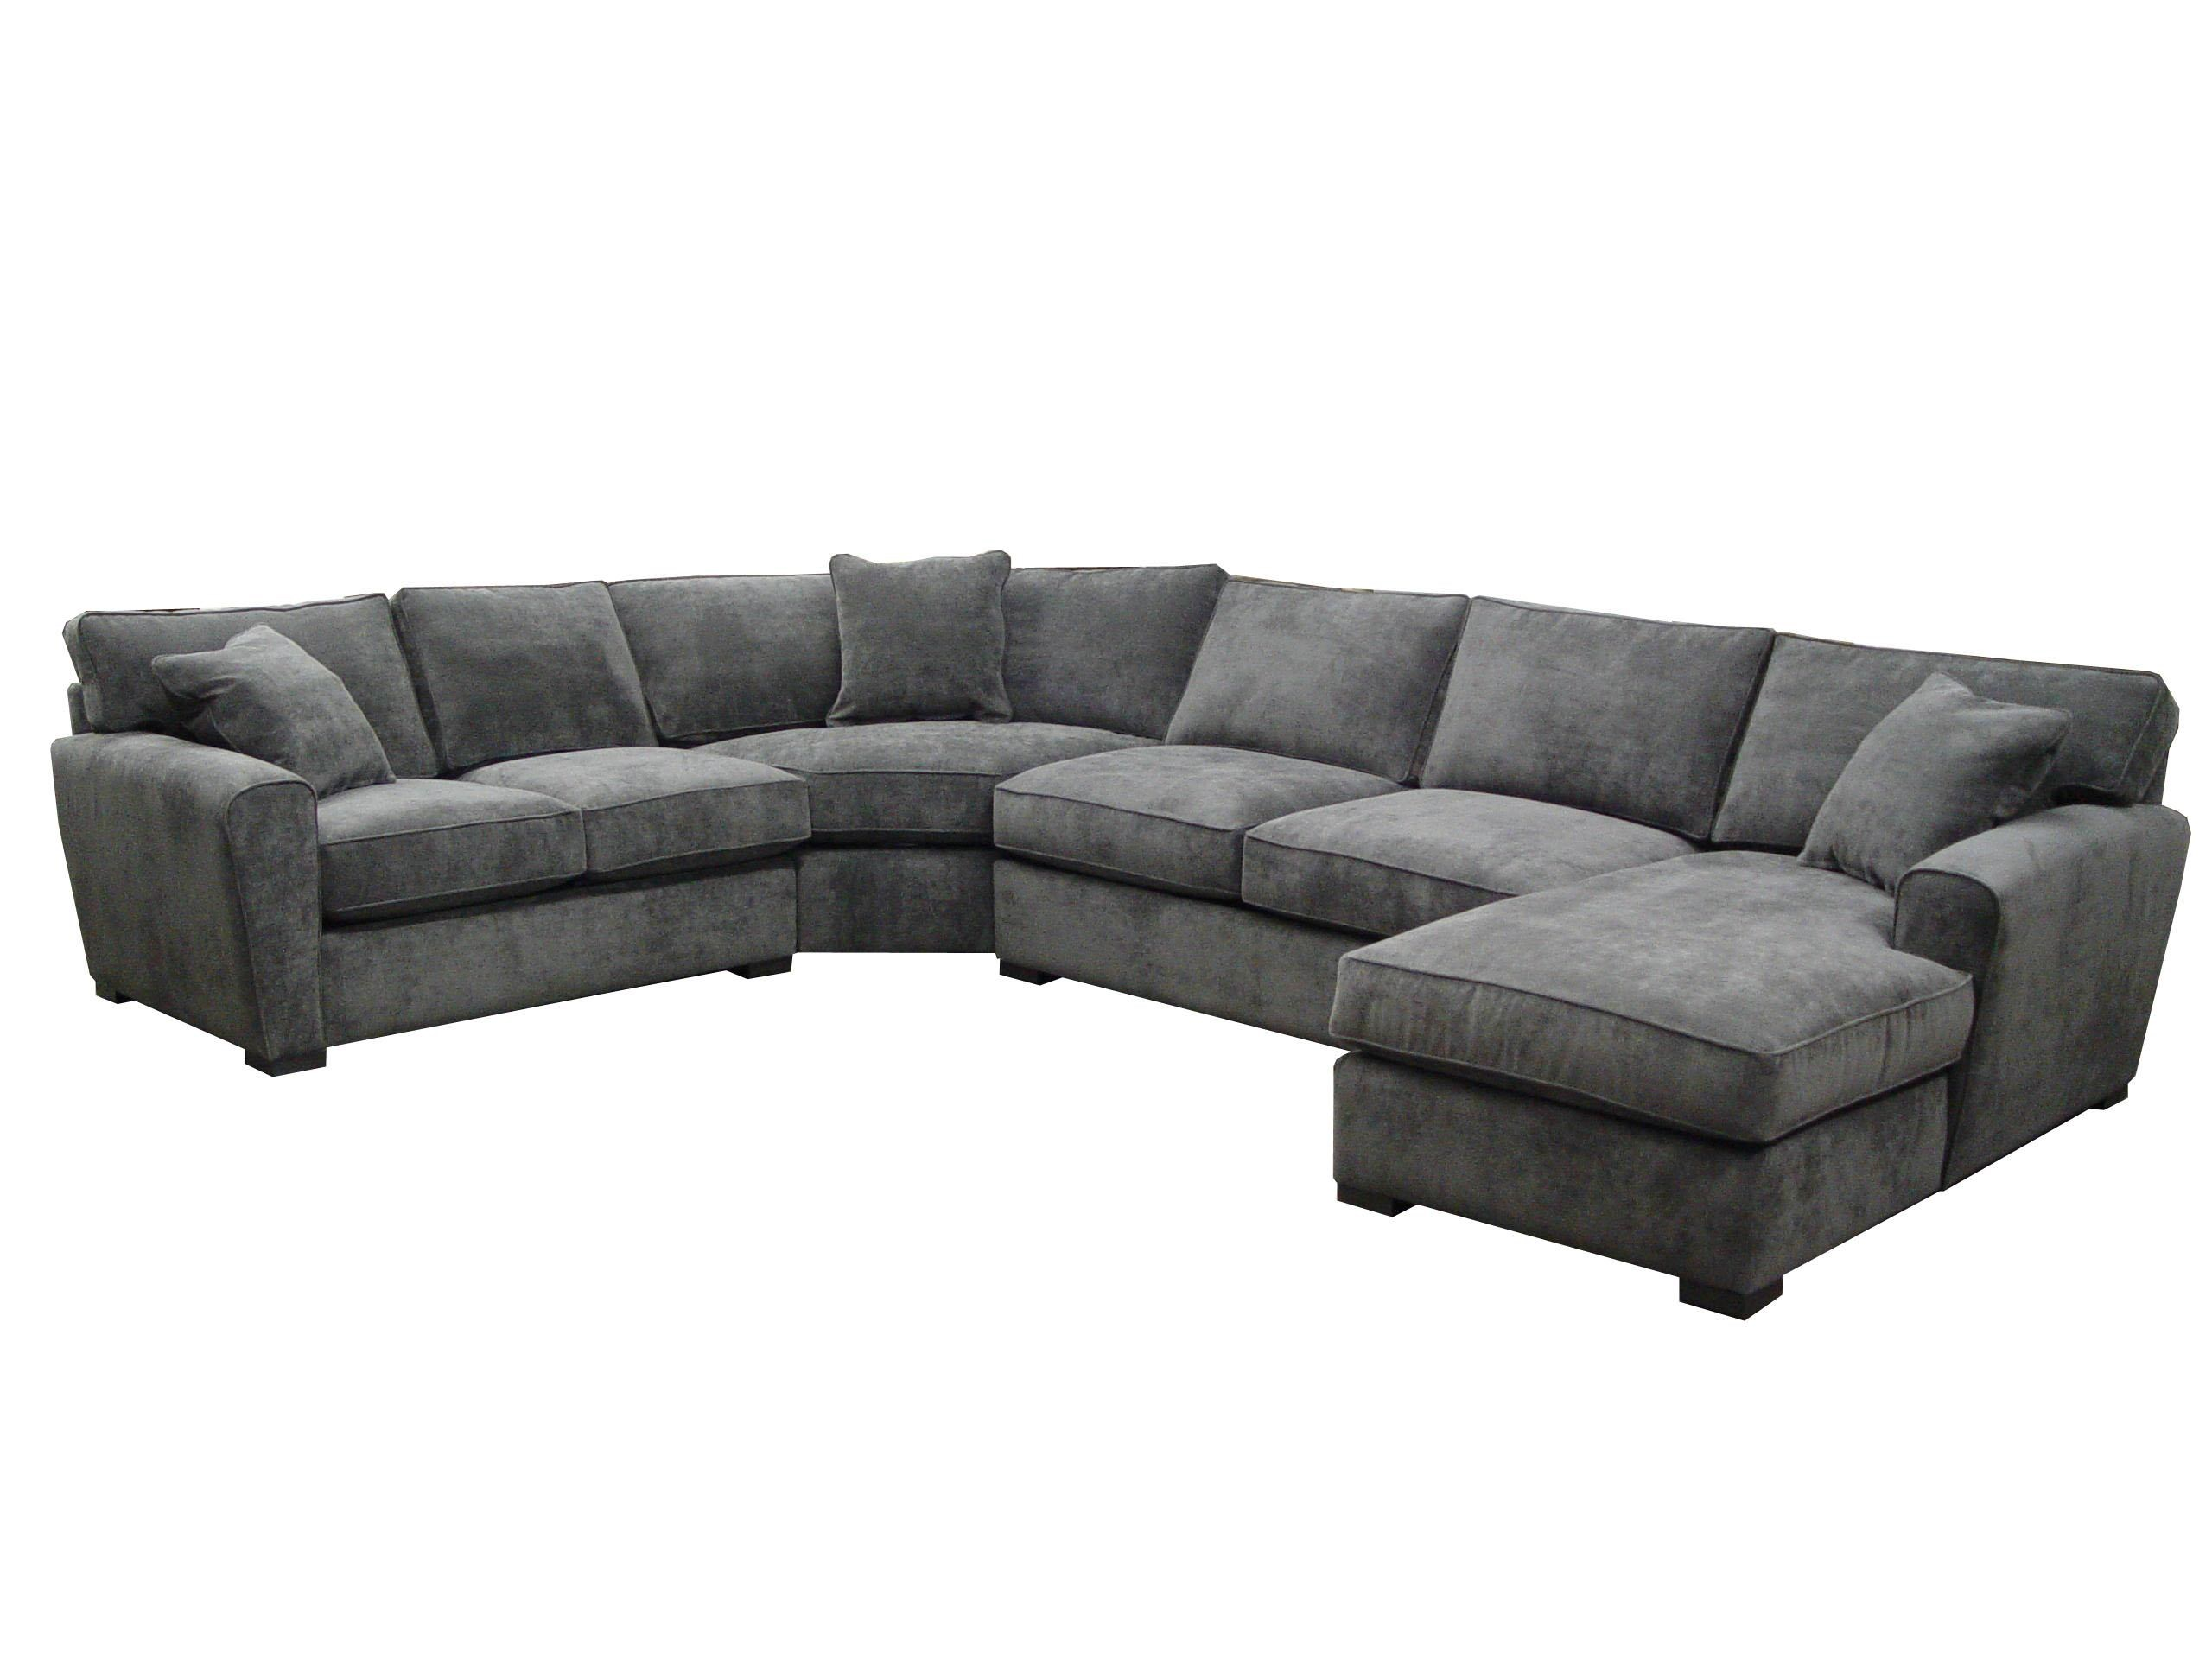 jonathan louis choices artemis 4 piece sectional with upholstered rh olindes com